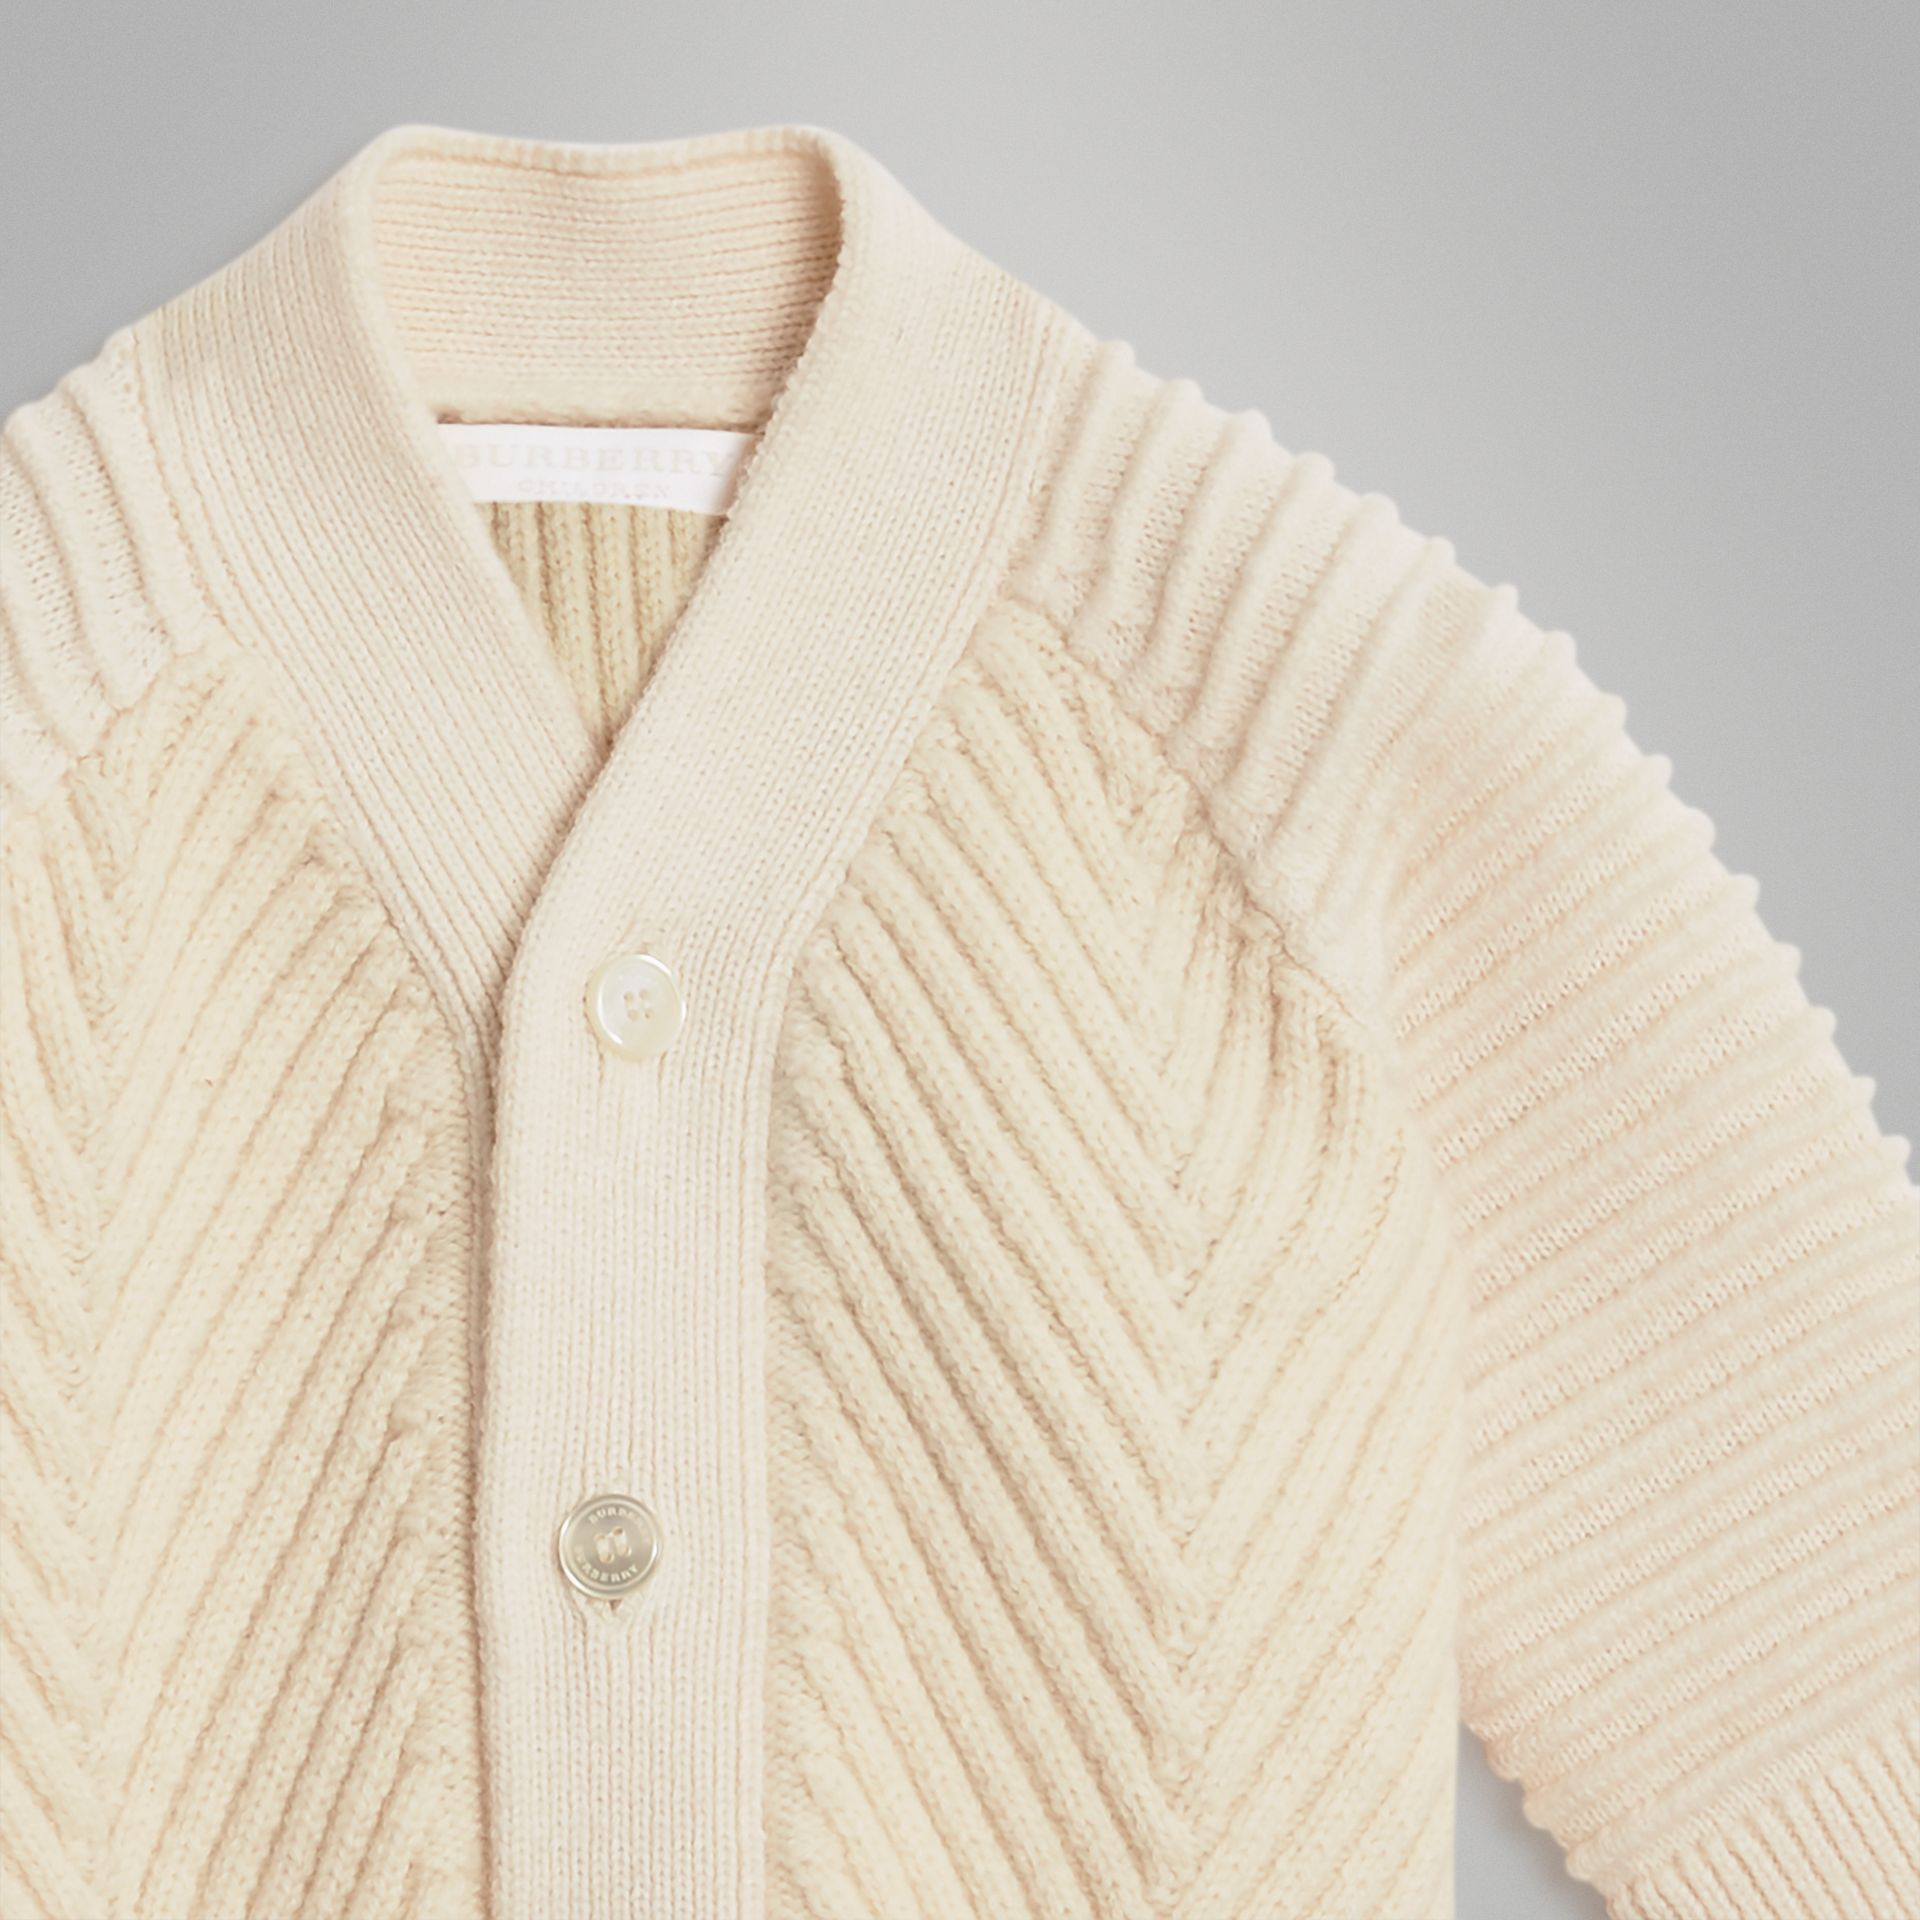 Rib Knit Wool Cashmere Cardigan in Ivory - Children | Burberry Australia - gallery image 4